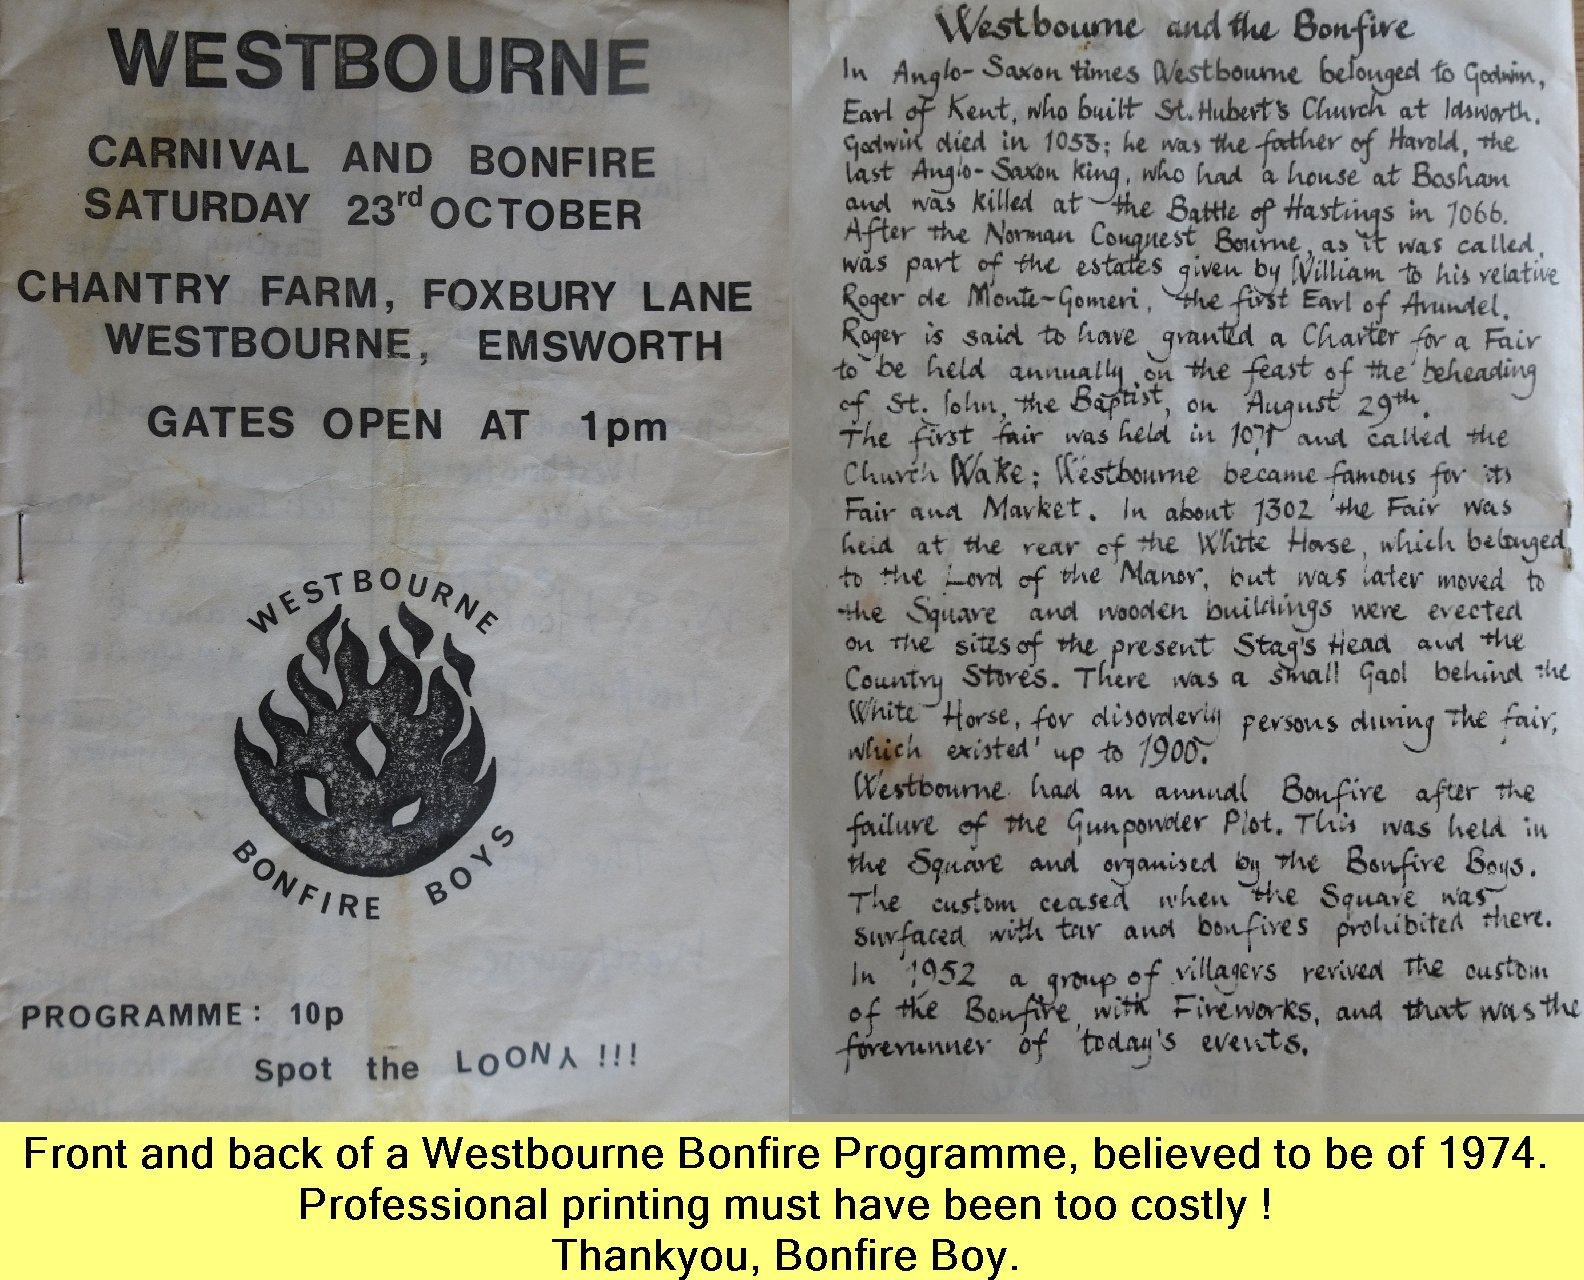 WESTBOURNE HISTORY PHOTO, BONFIRE, BOY, PROGRAMME, 1974,